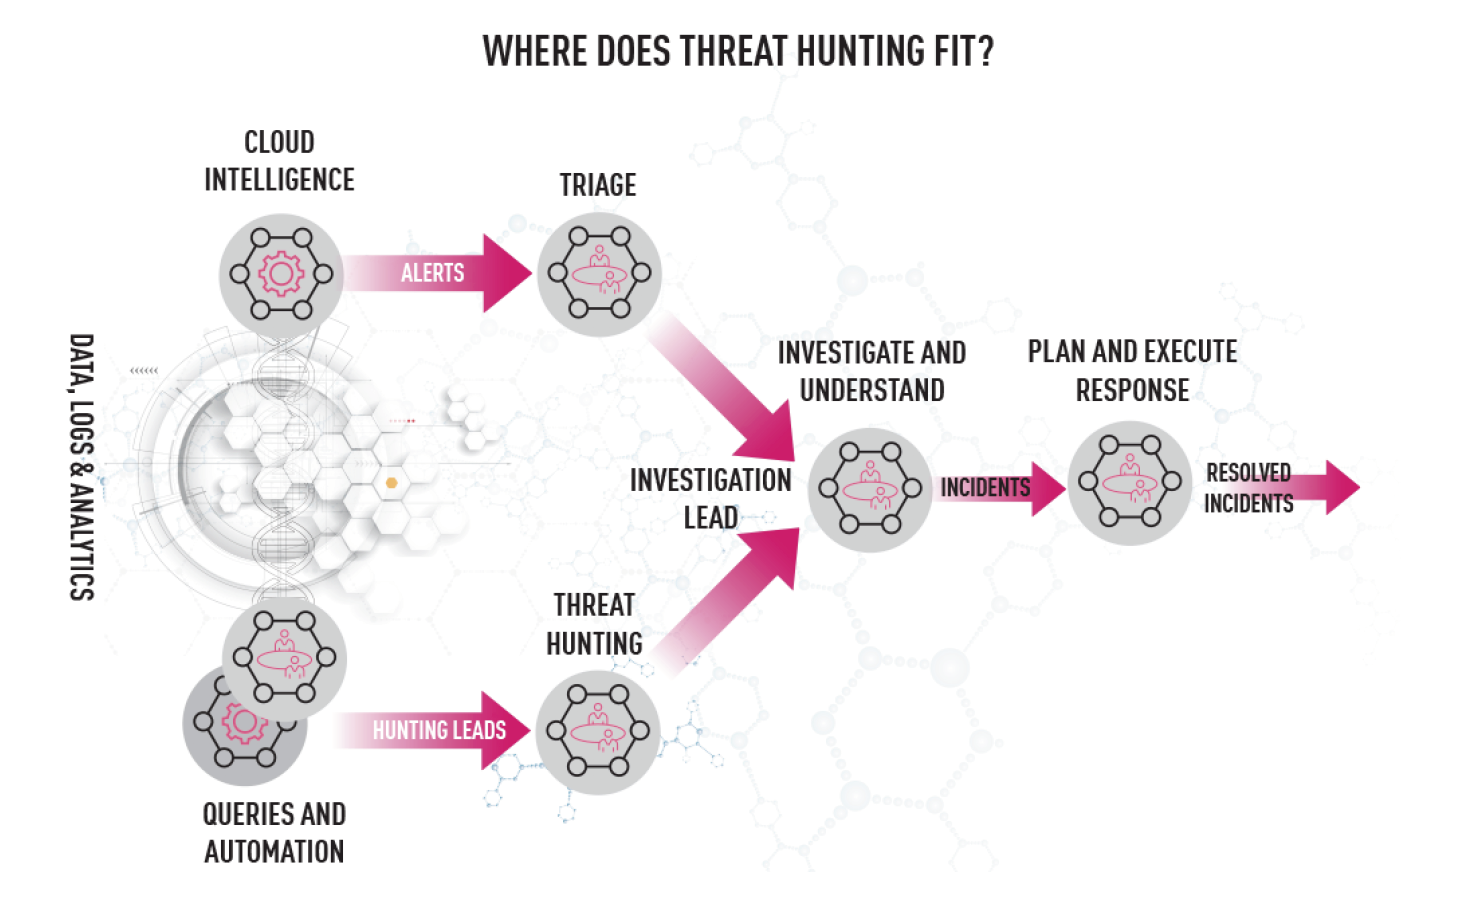 Where does threat hunting fit?